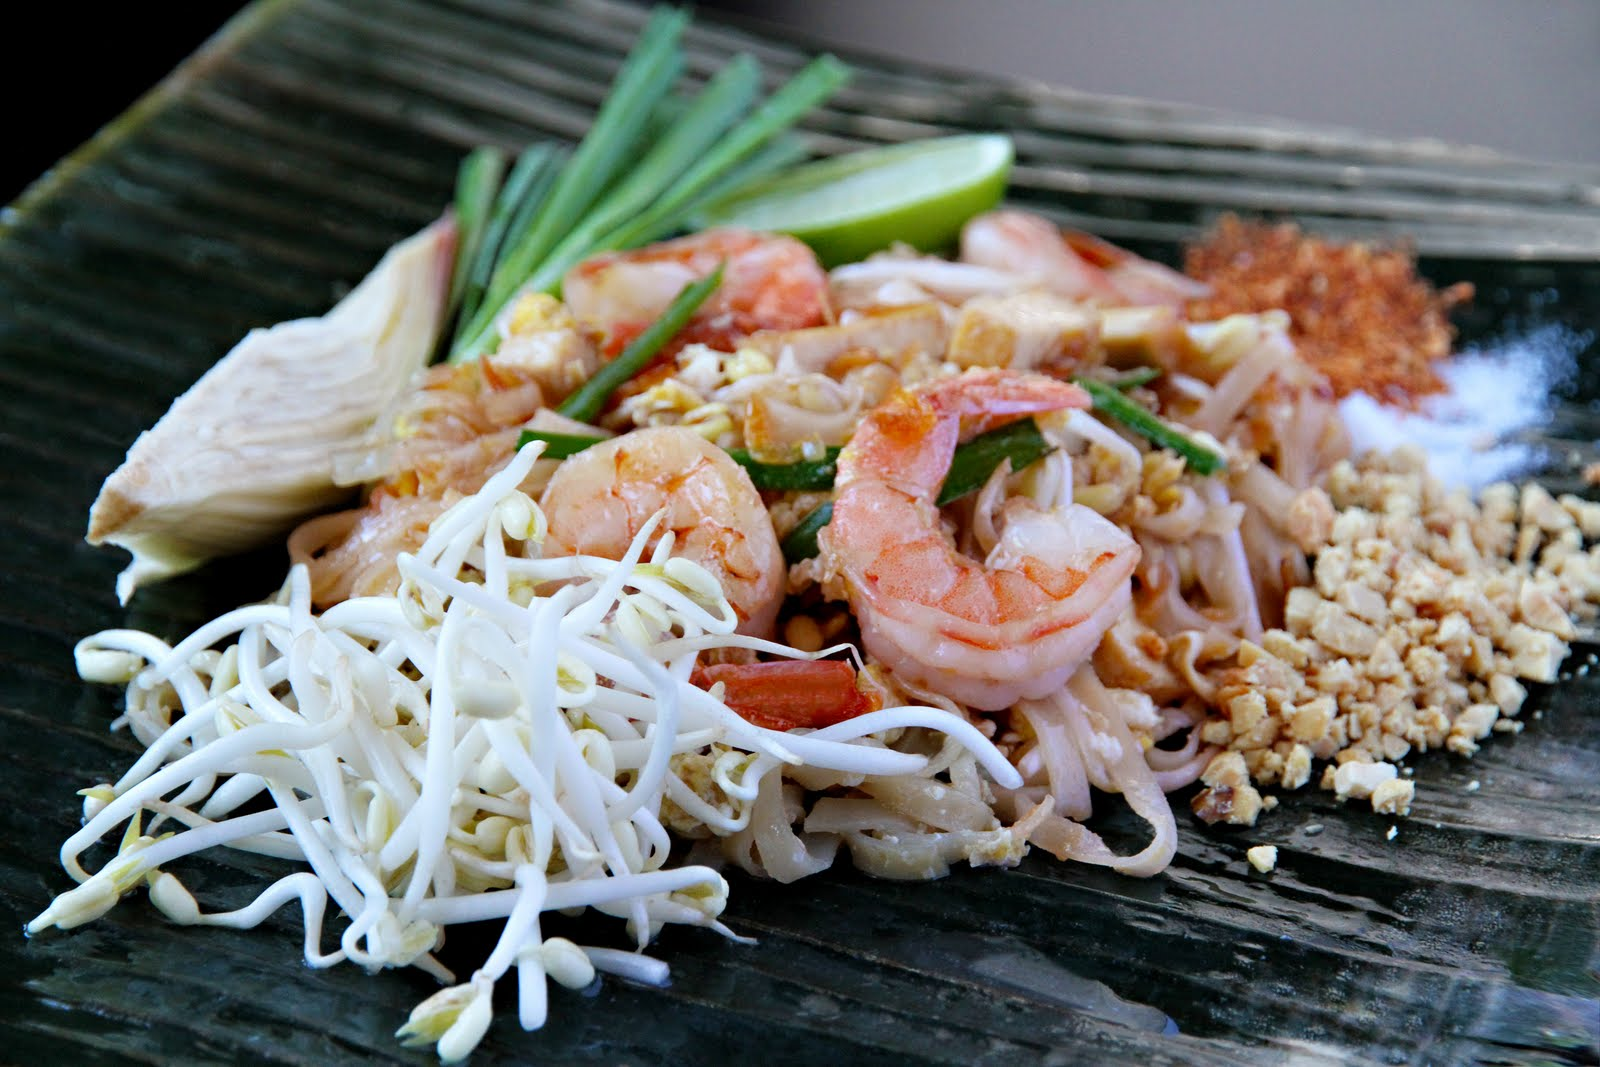 Pad thai recipe part five making pad thai shesimmers pad thai recipe forumfinder Gallery